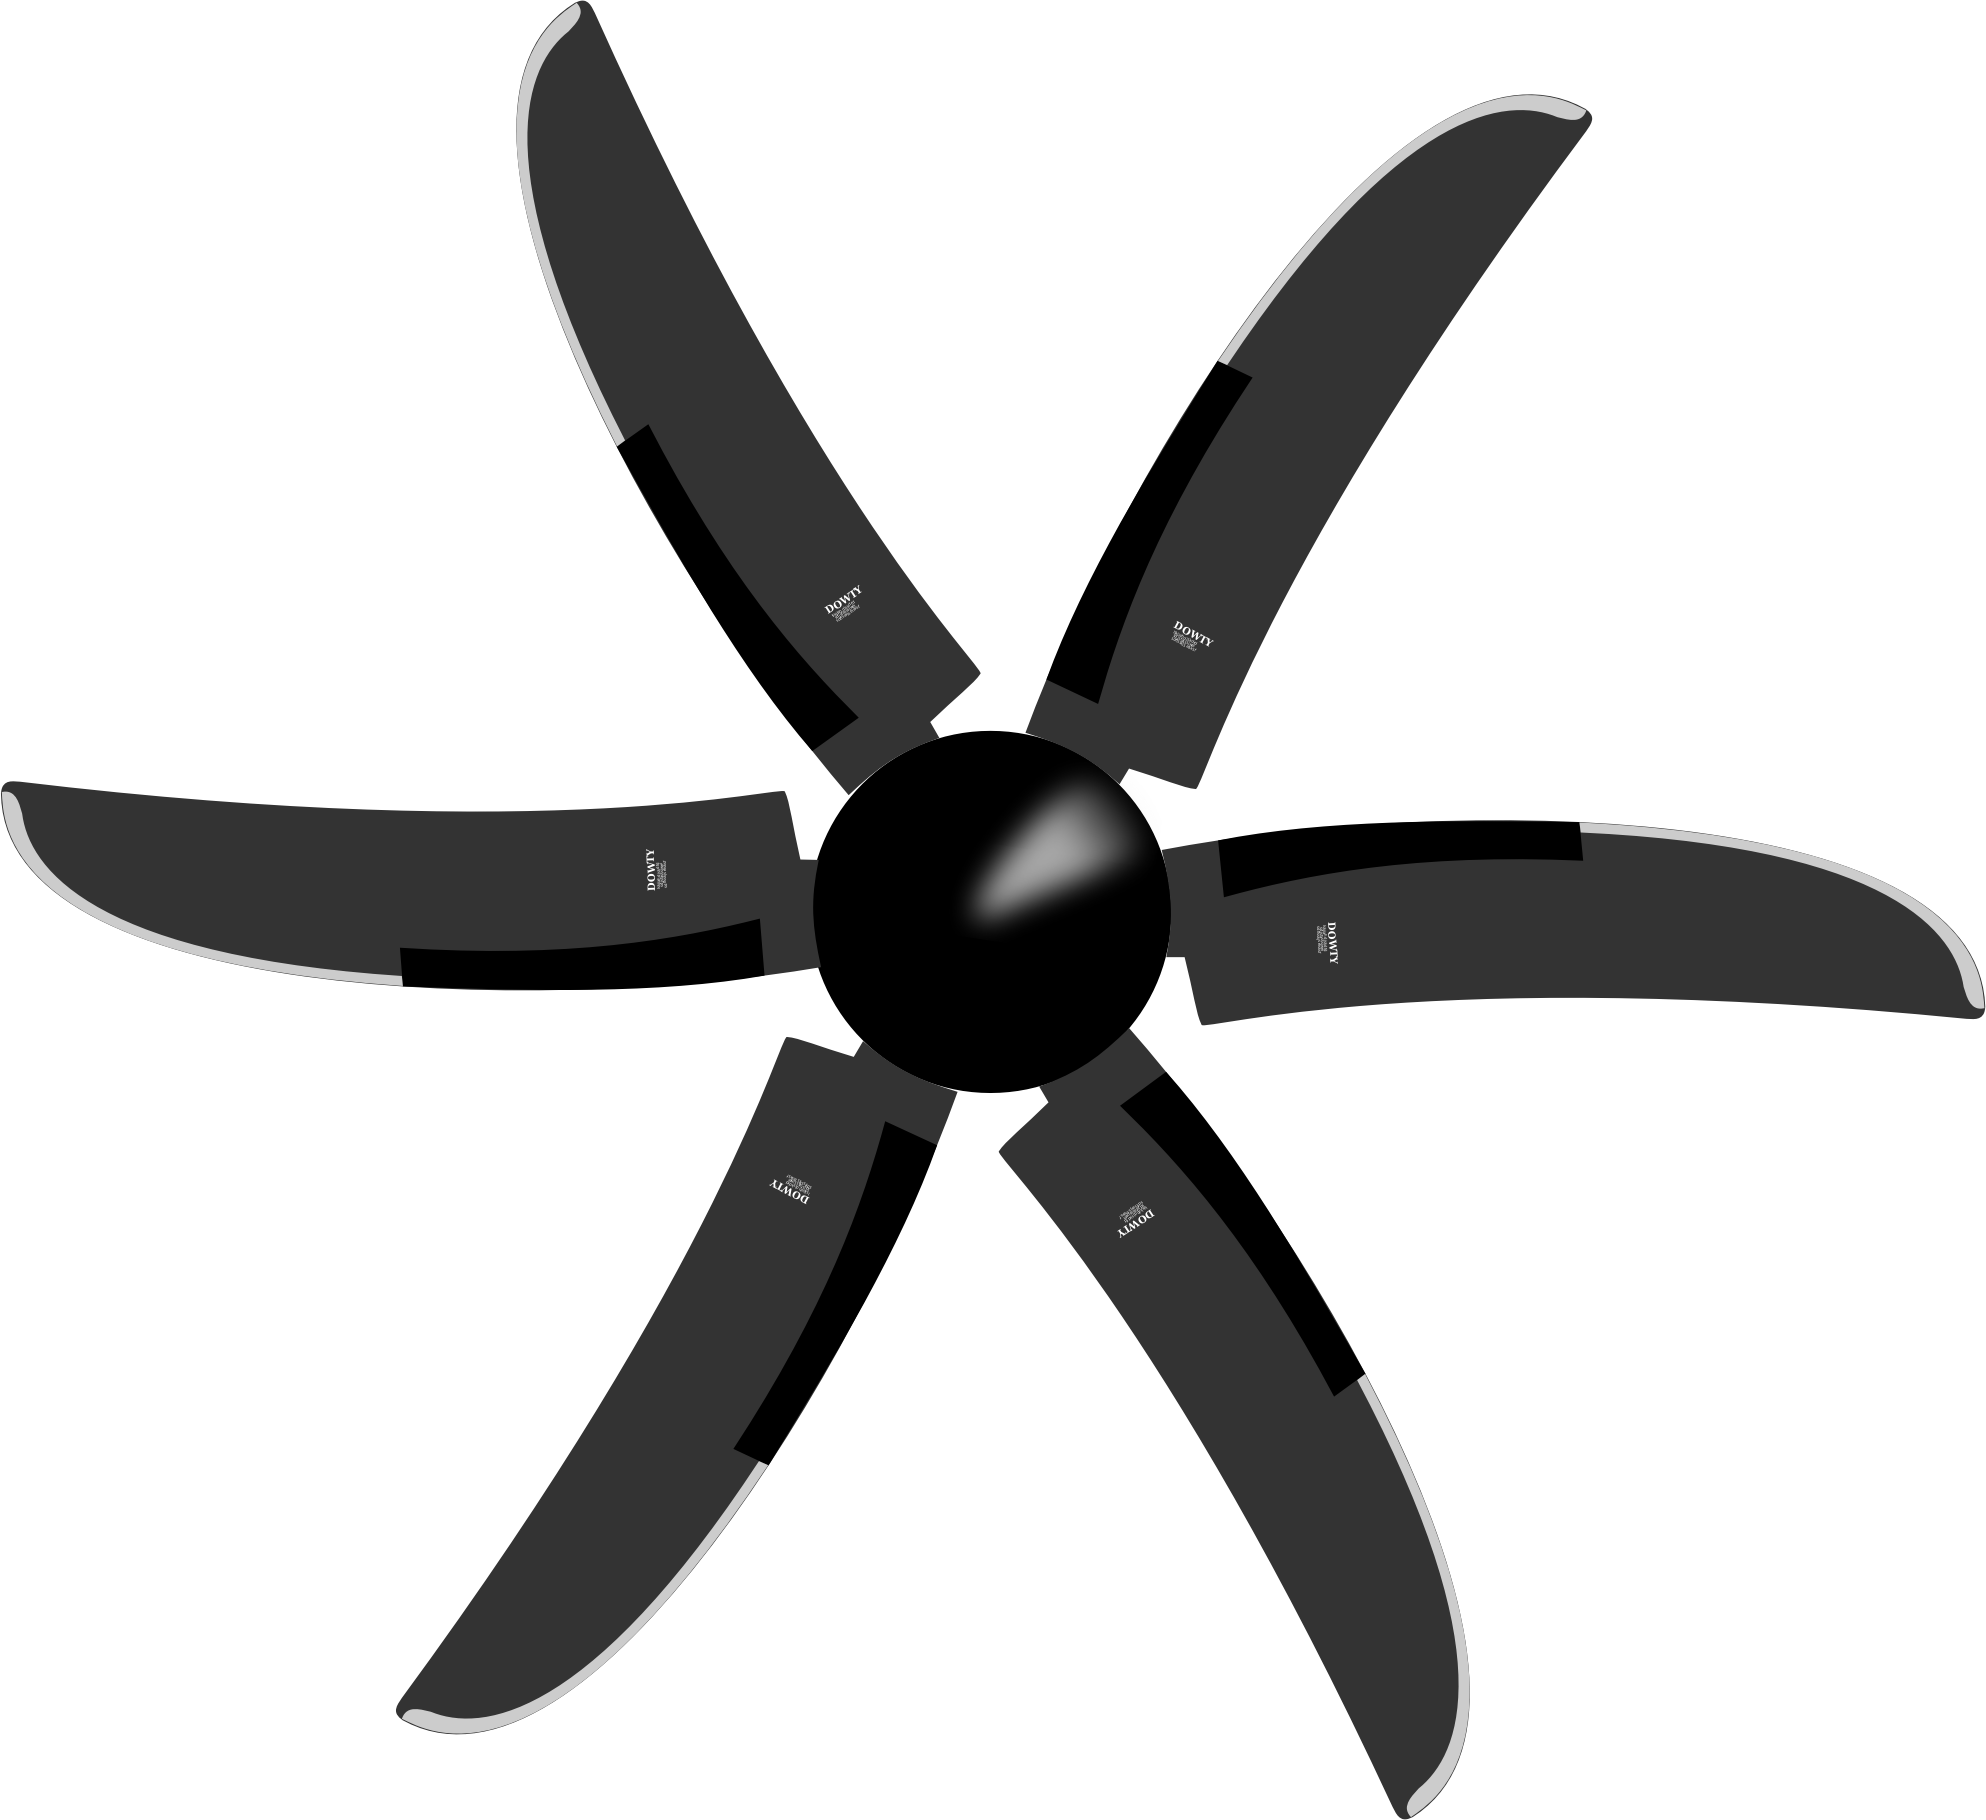 Clipart Dowty 6 Blade Propeller